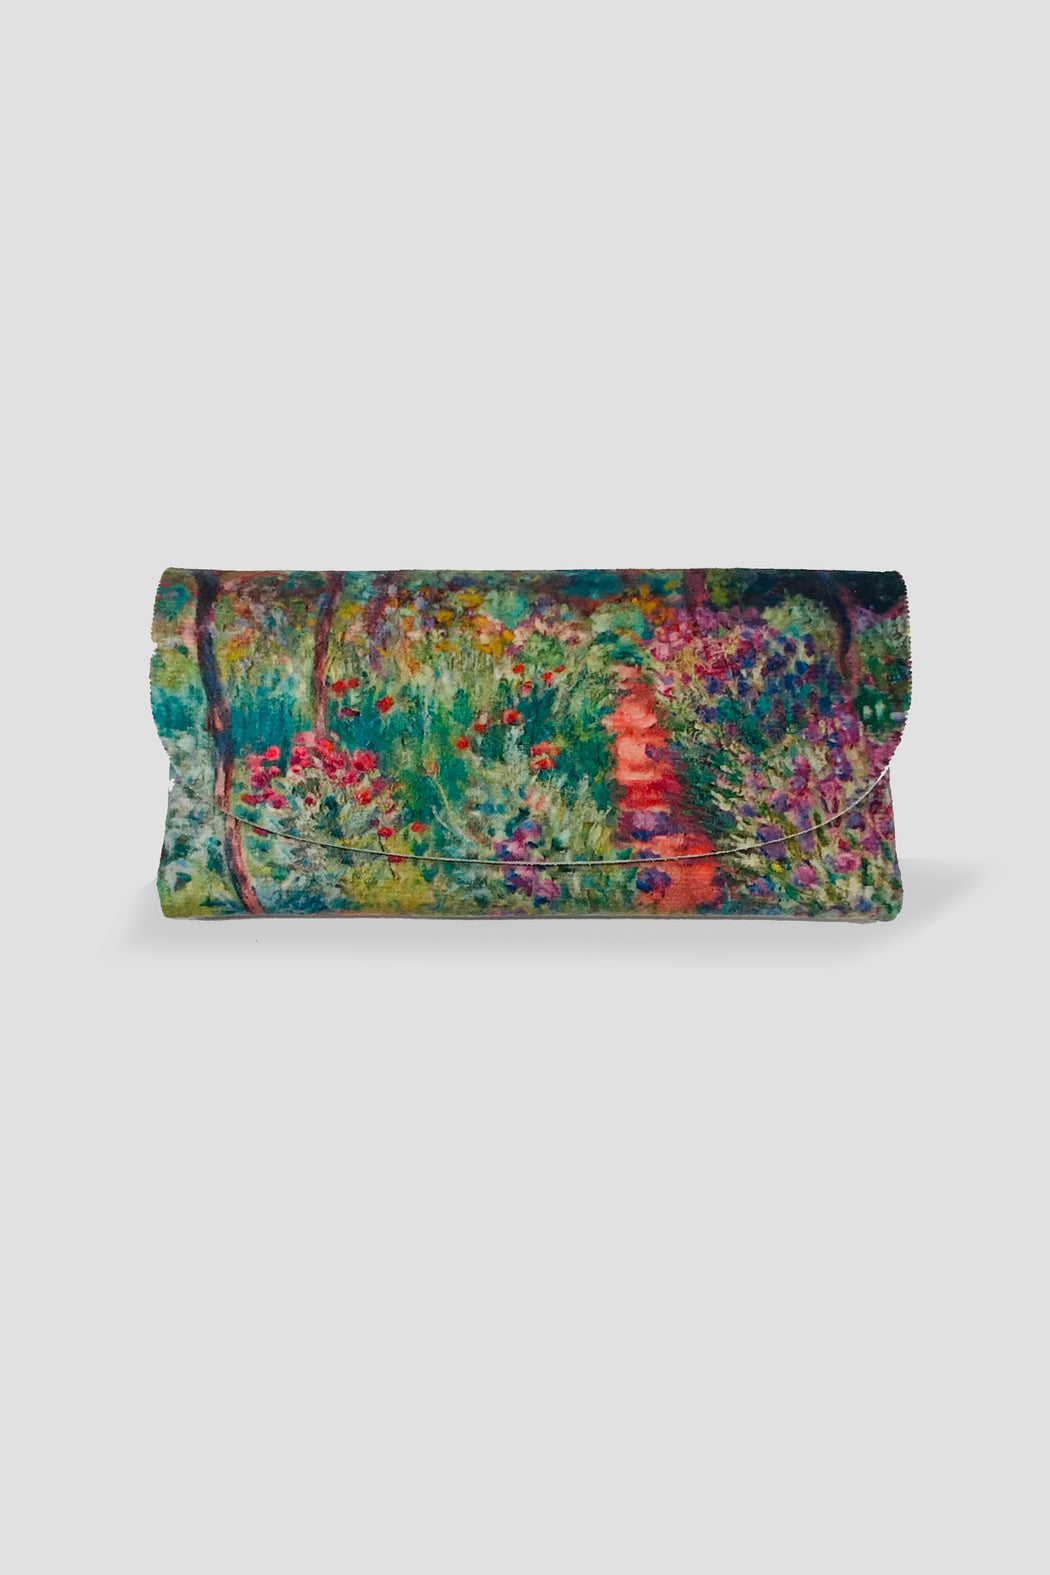 Kelnet-KELNET FRENCH VELOUR GLASSES CASE GARDEN AT GIVERNY MONET-Mott and Mulberry